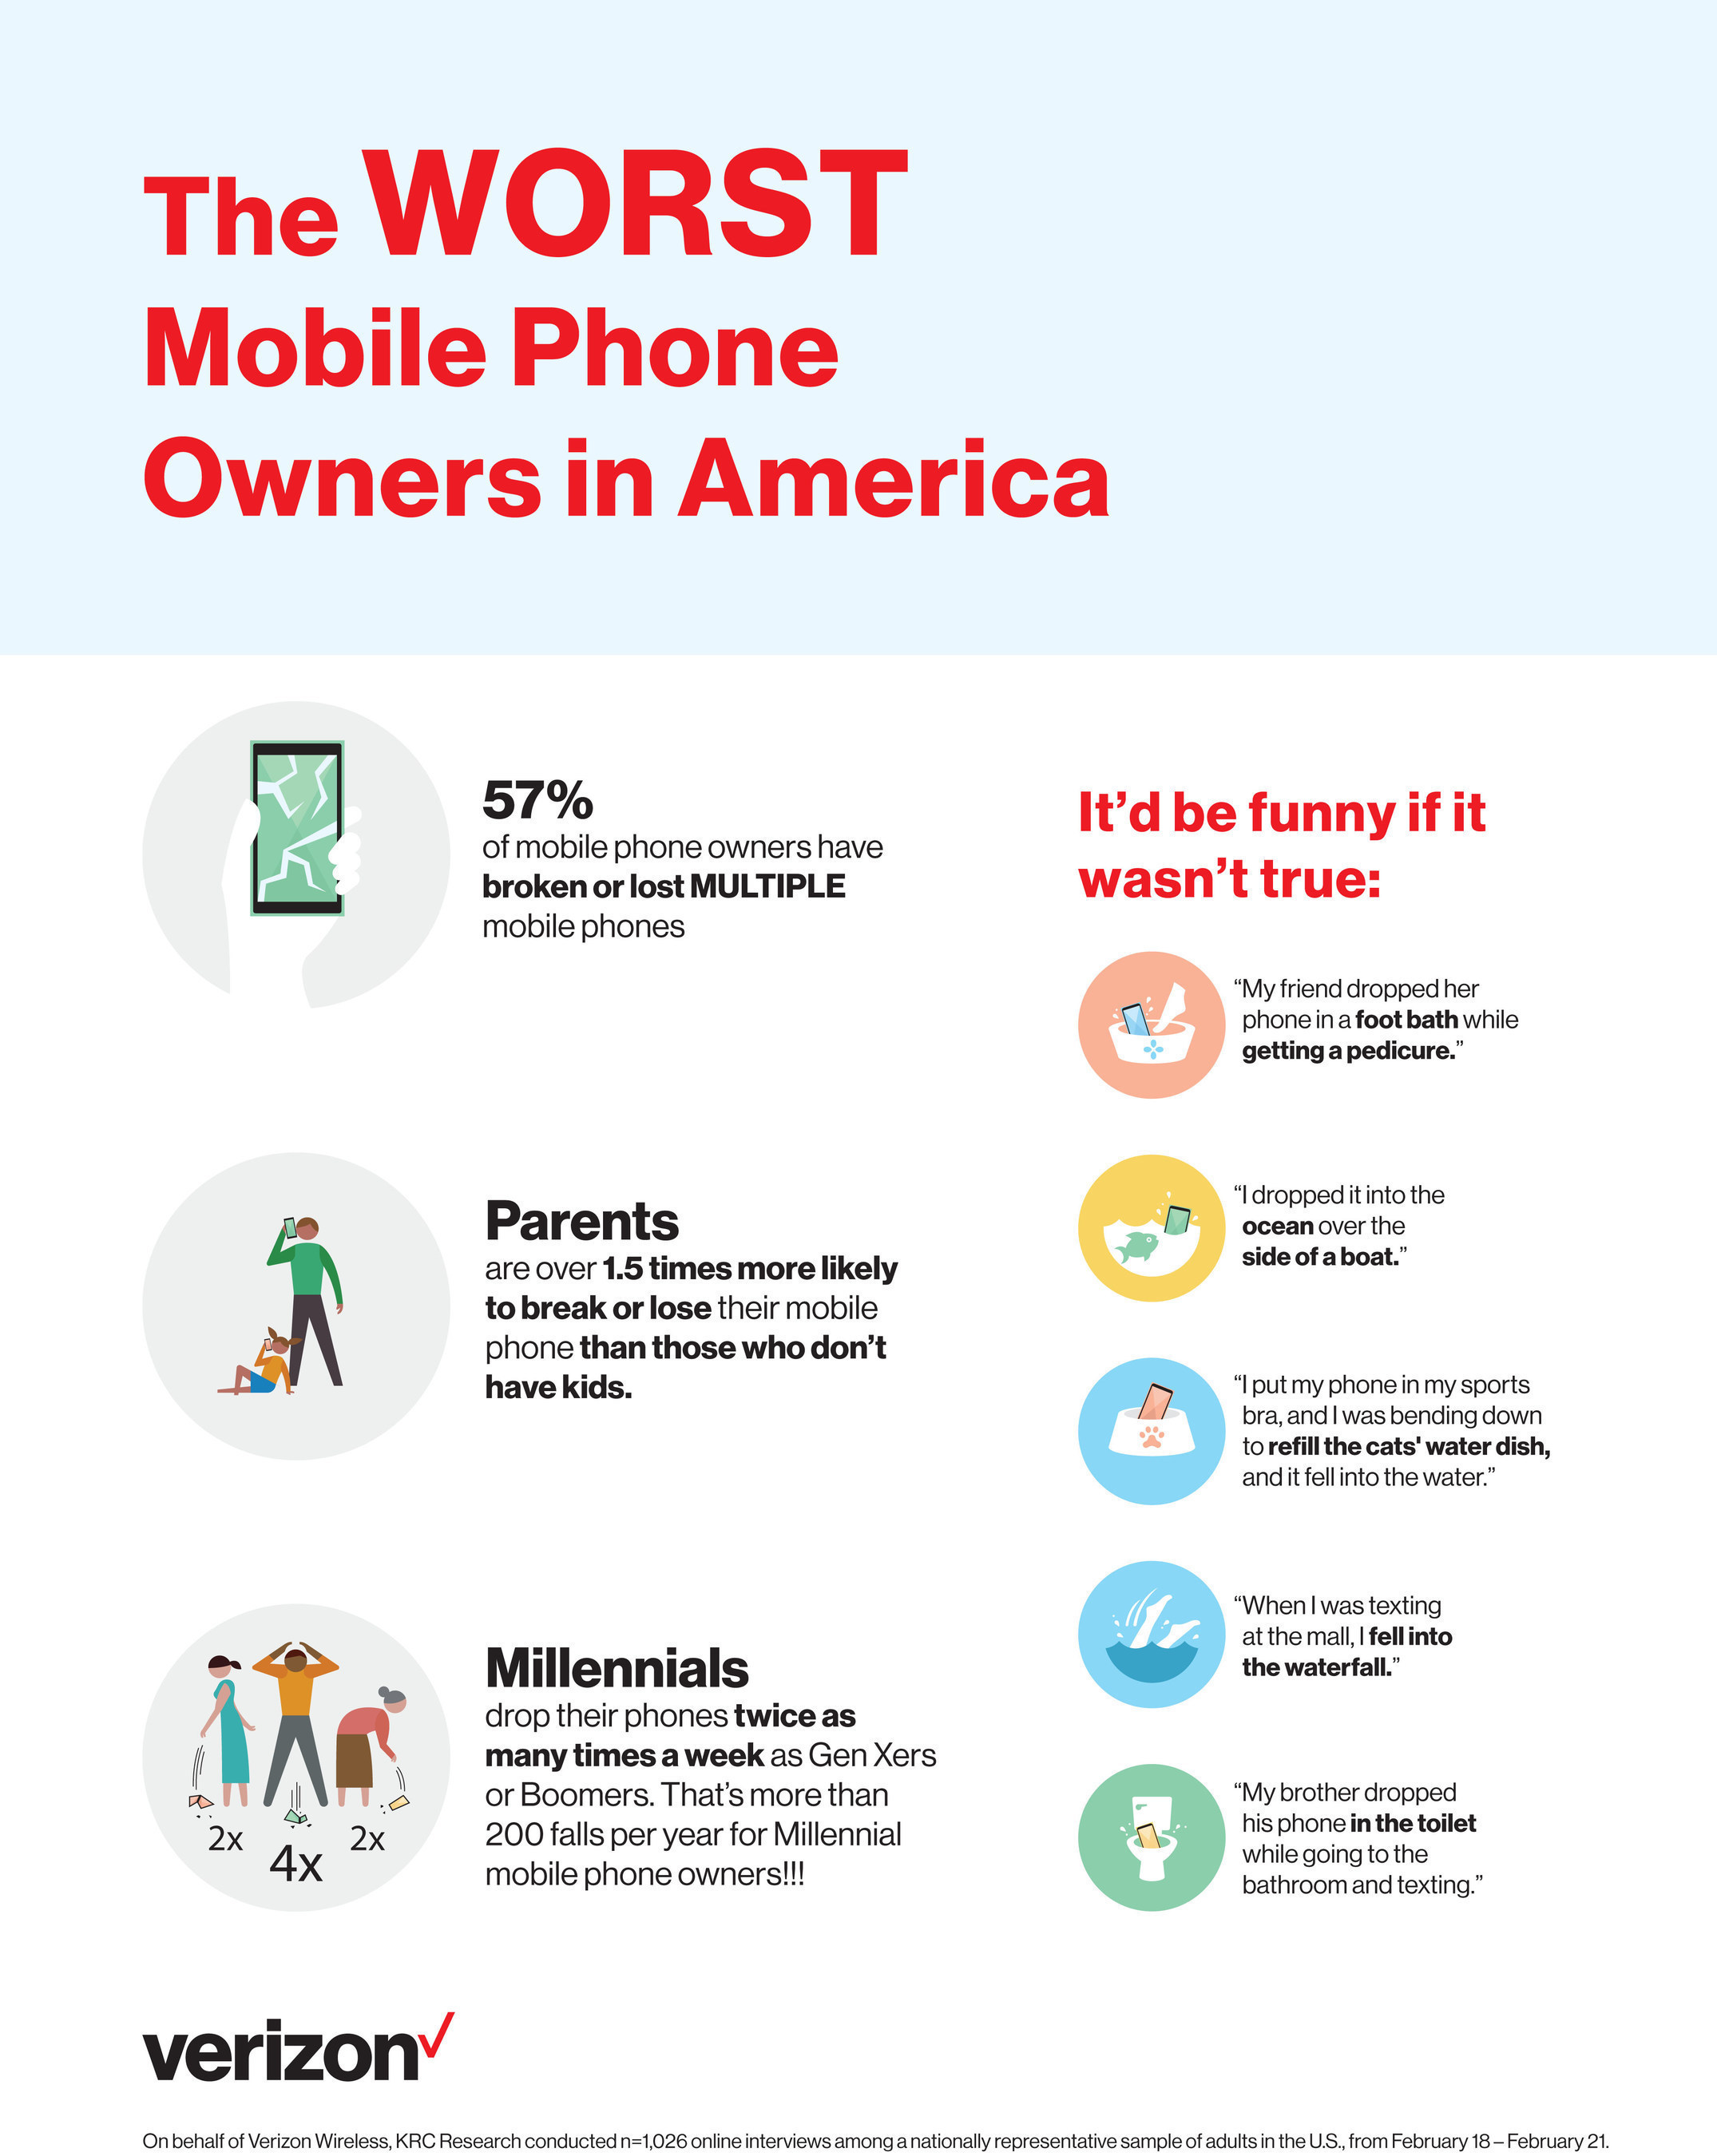 The Worst Mobile Phone Owners in America